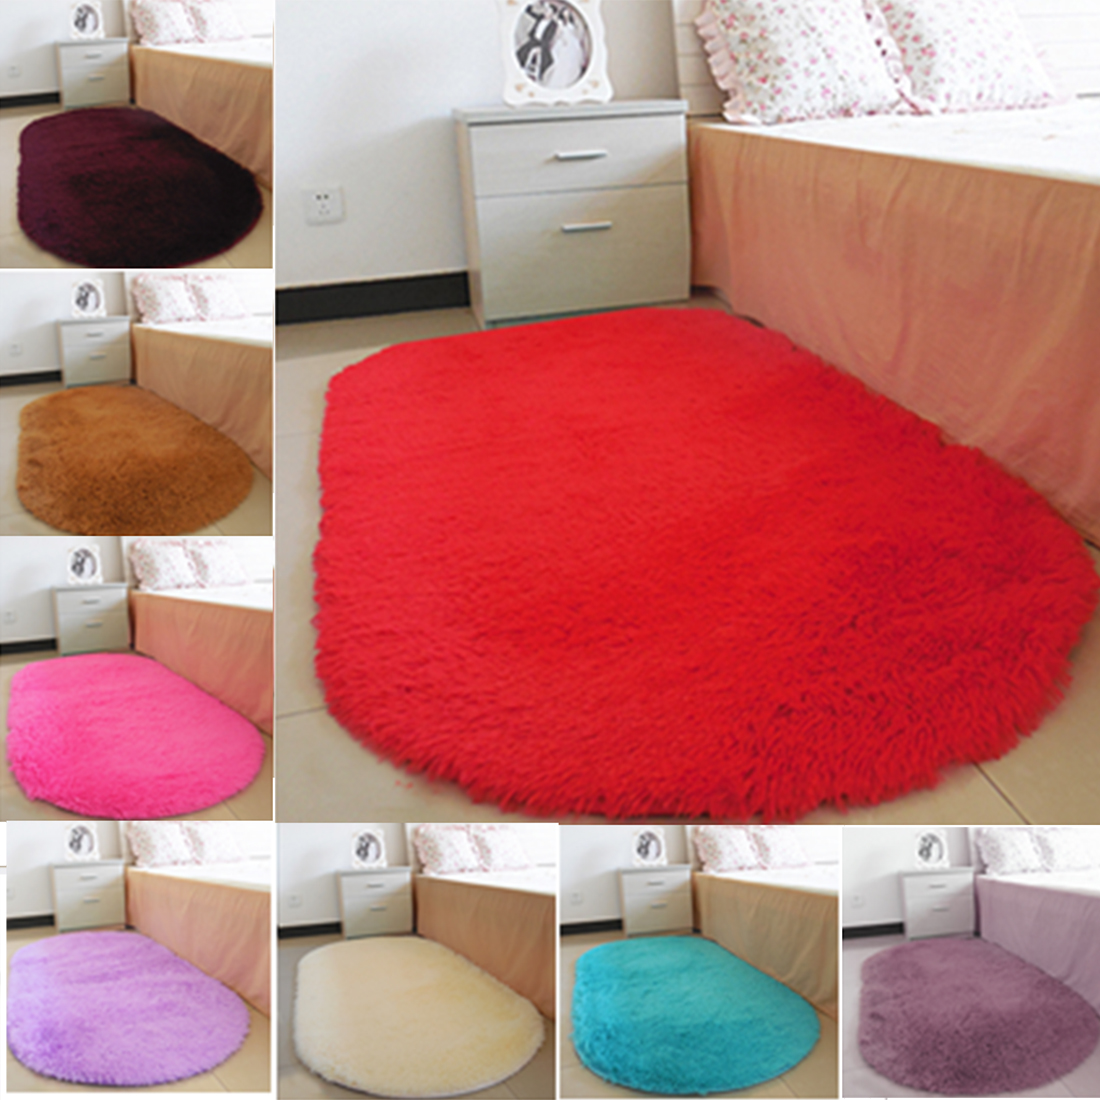 Oval bathroom rug - Salon Floor Rugs Non Slip Bath Mats Bathroom Carpets Oval Absorbent Soft Memory Carpets For